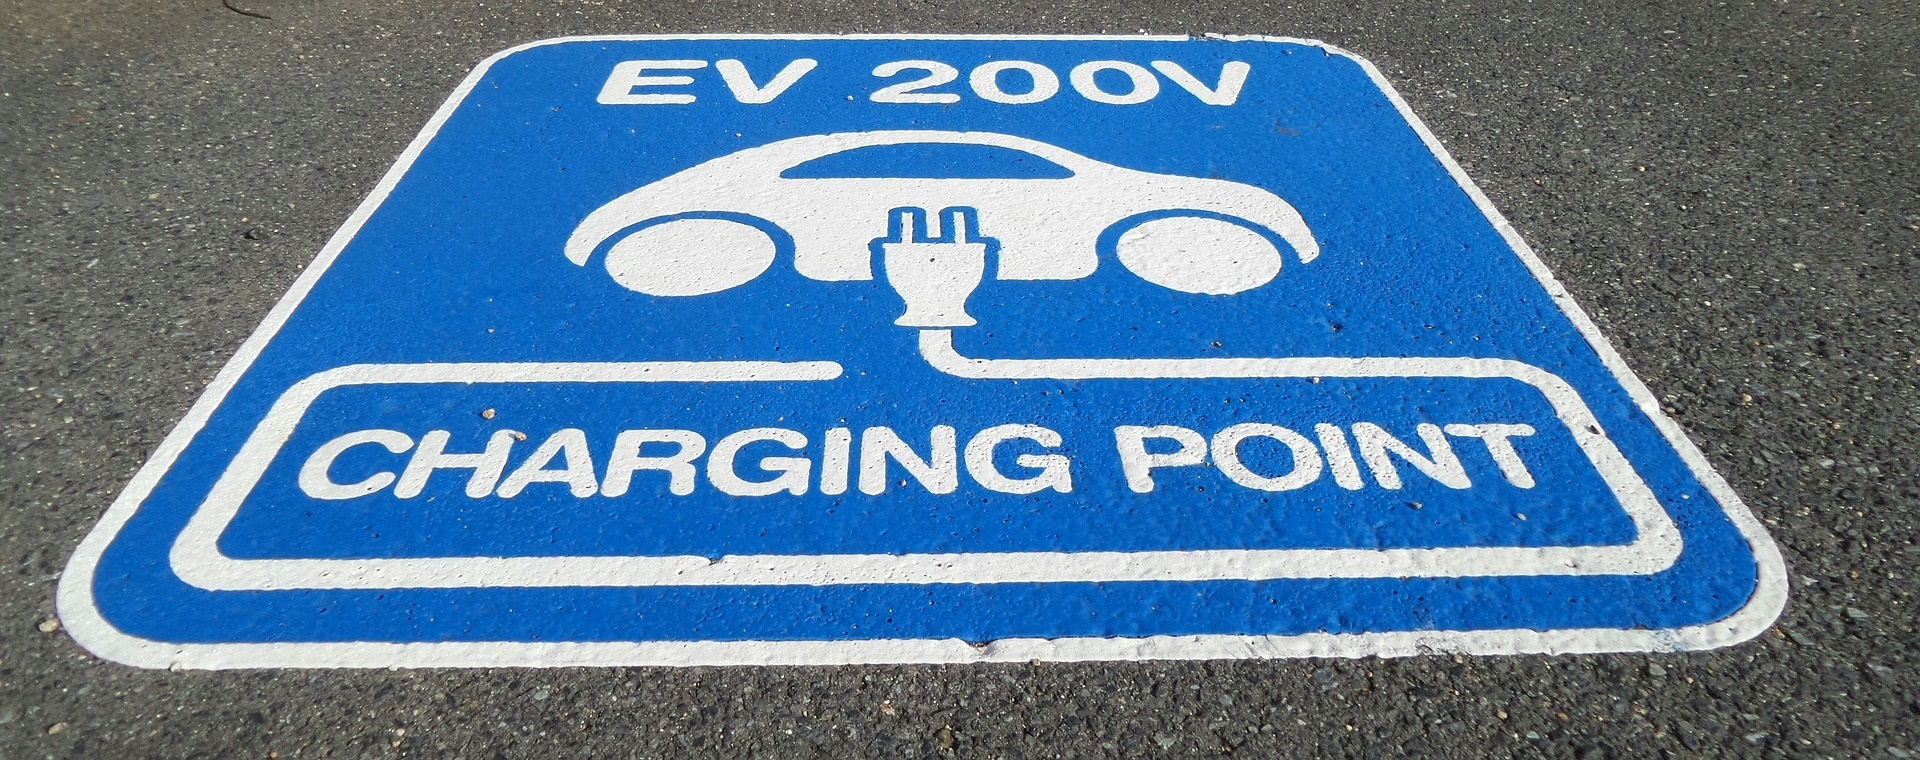 Ilkley could soon get more charging points for electric vehicles